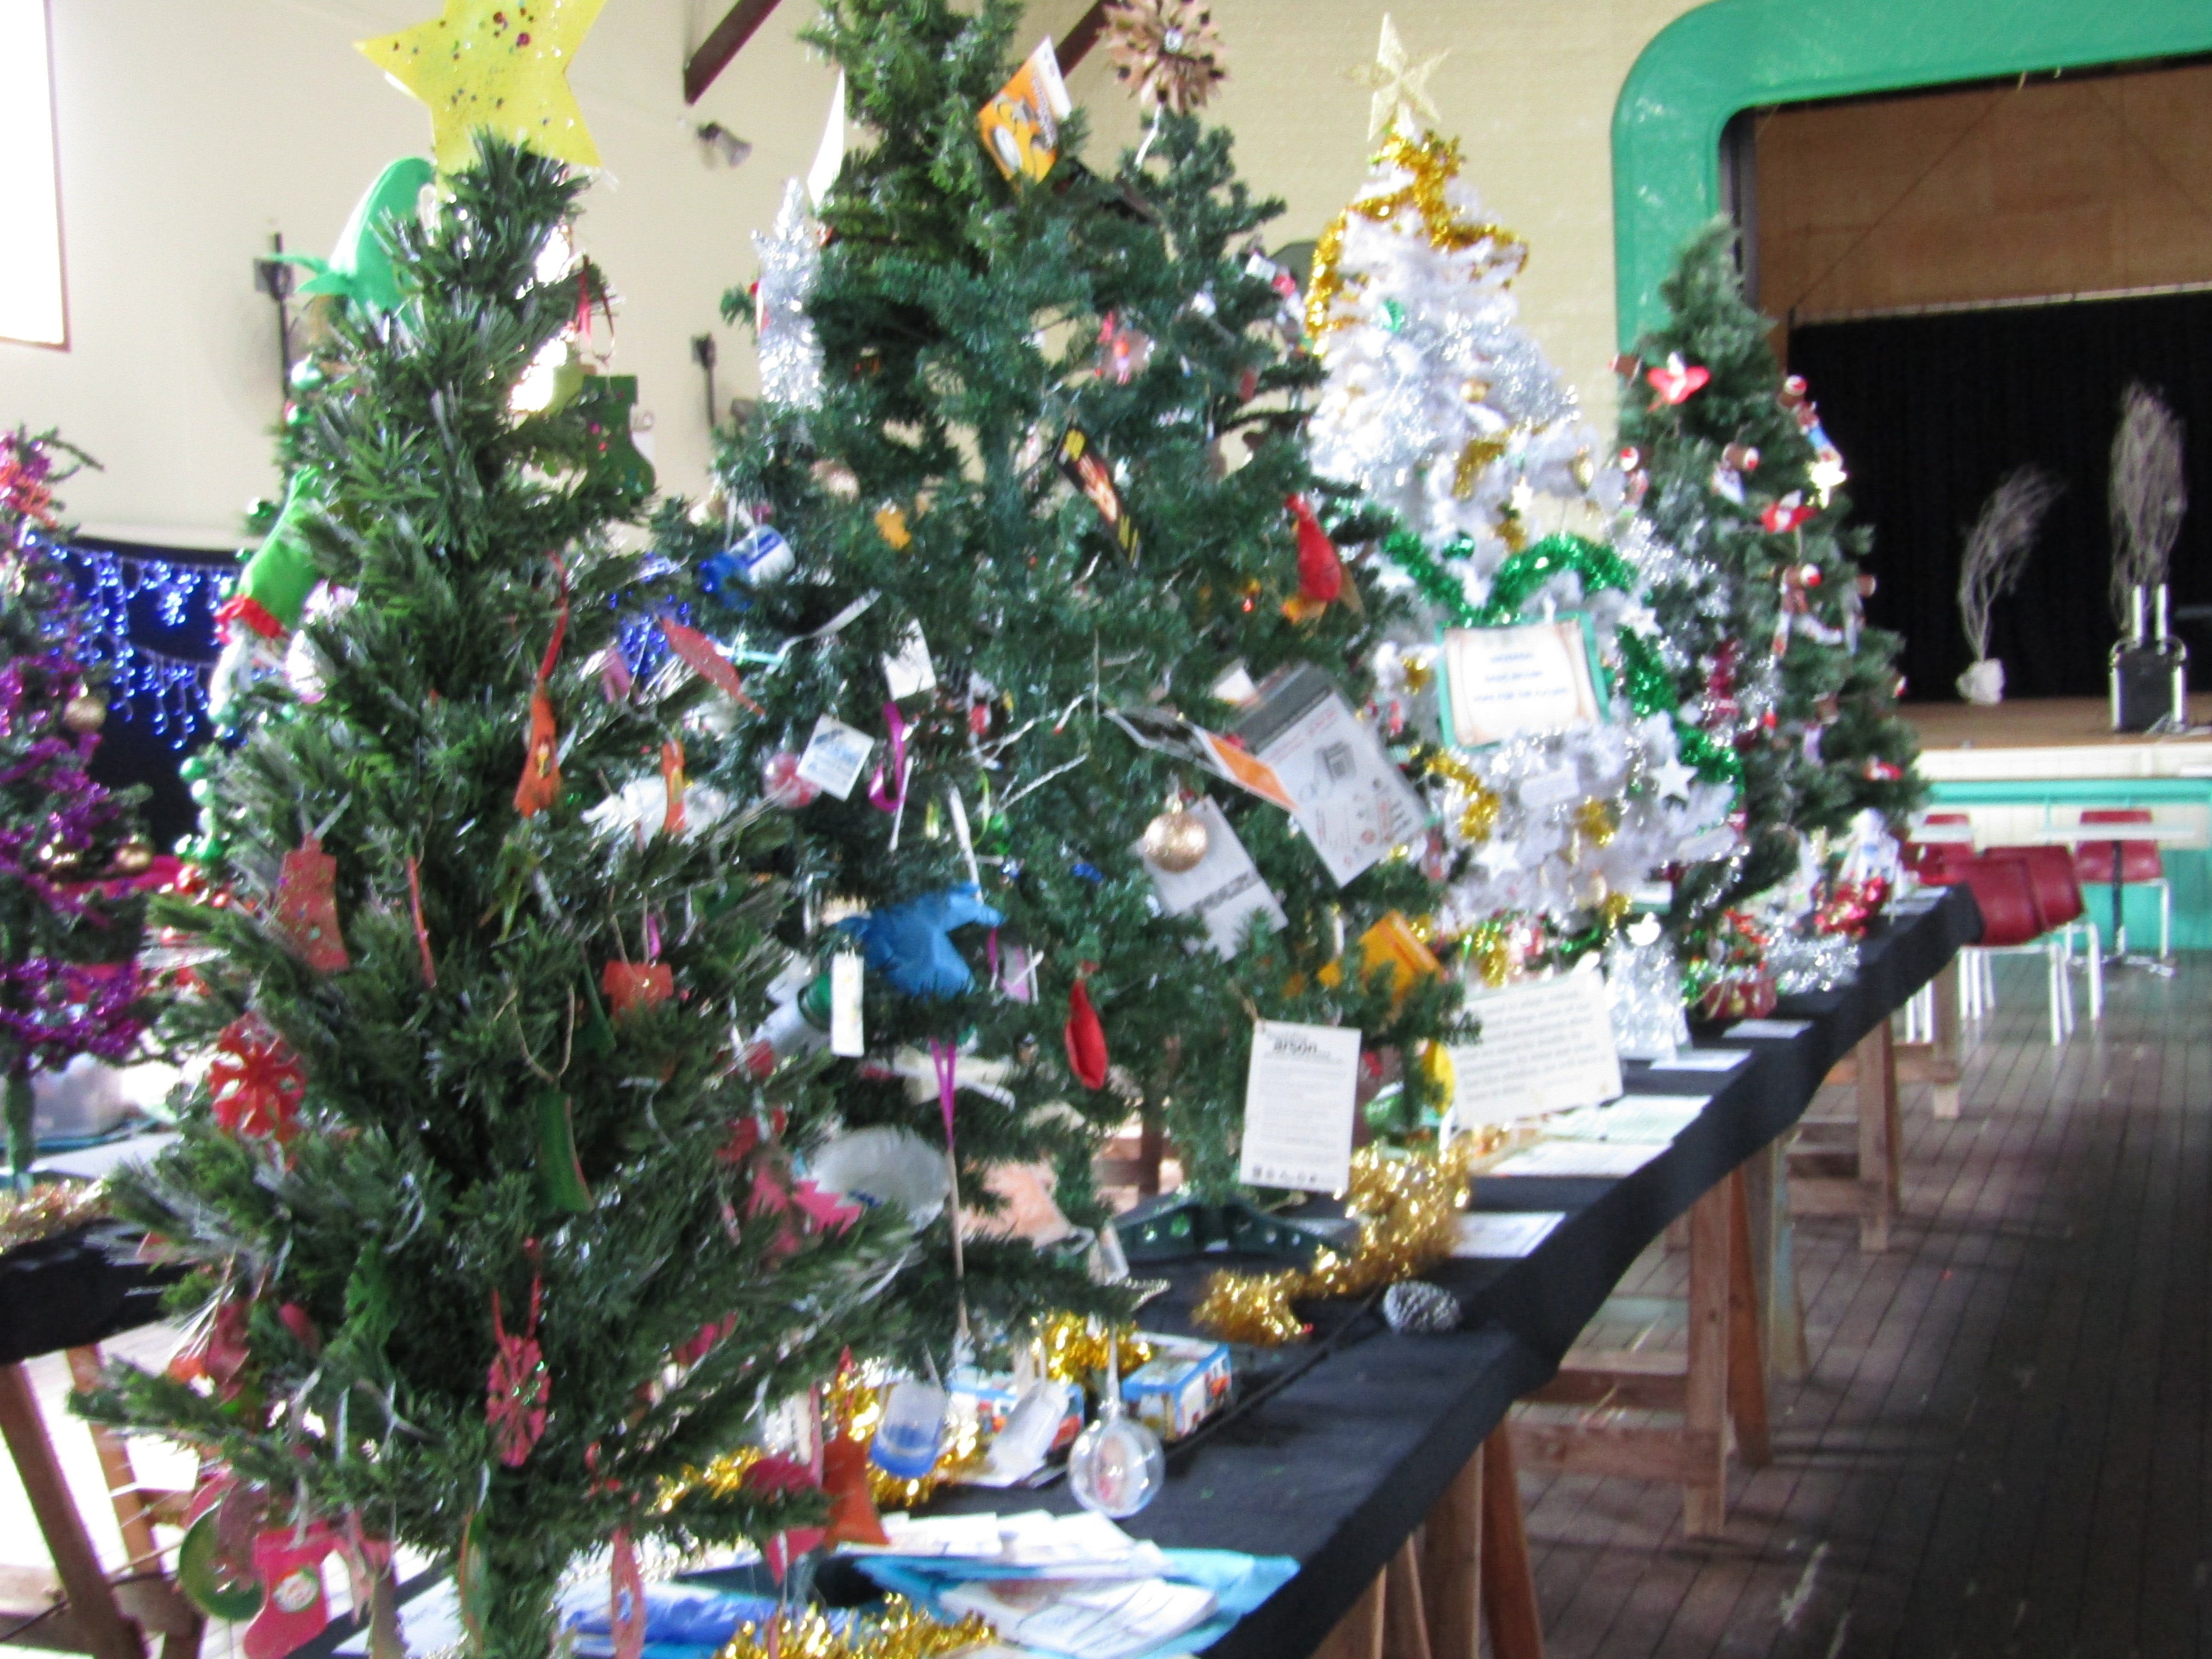 Mount Morgan Christmas Tree Festival - Yarra Valley Accommodation